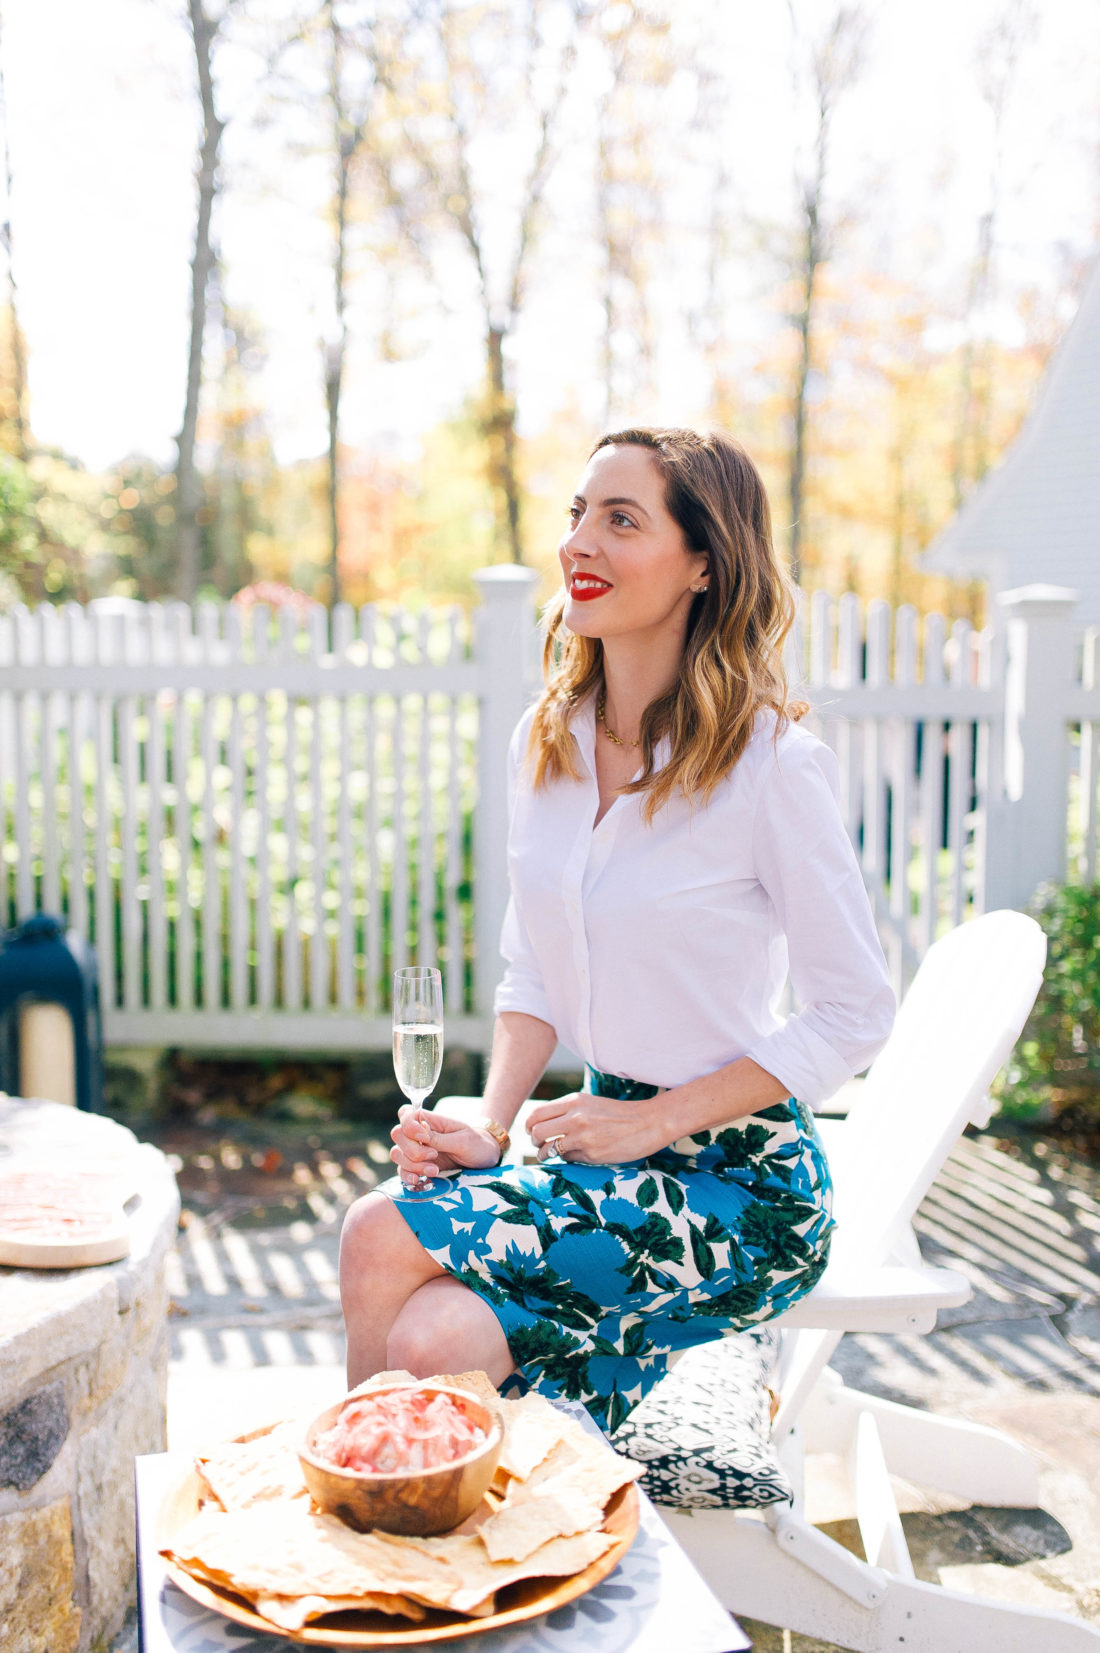 Eva Amurri Martino sits with a cocktail outside on the patio of her Connecticut home